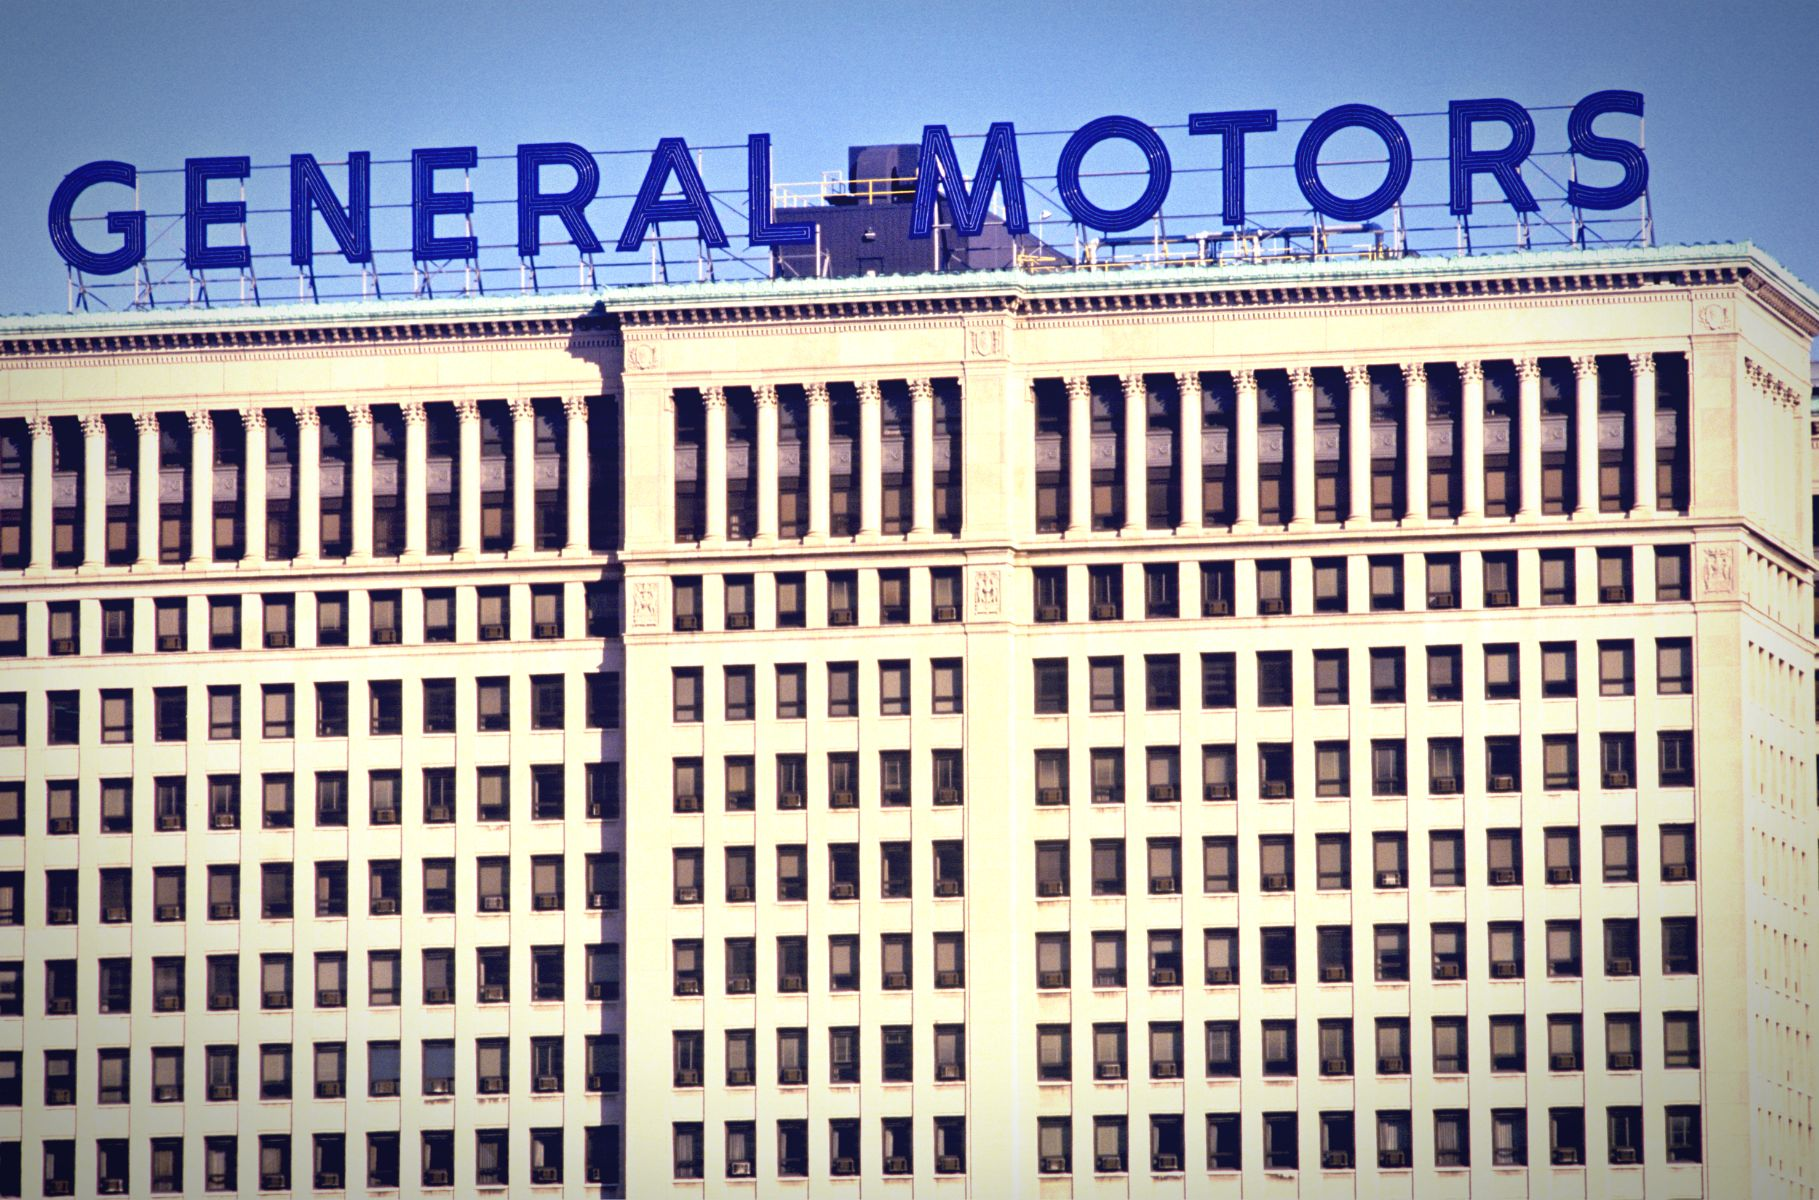 The Discontinued Brands of General Motors